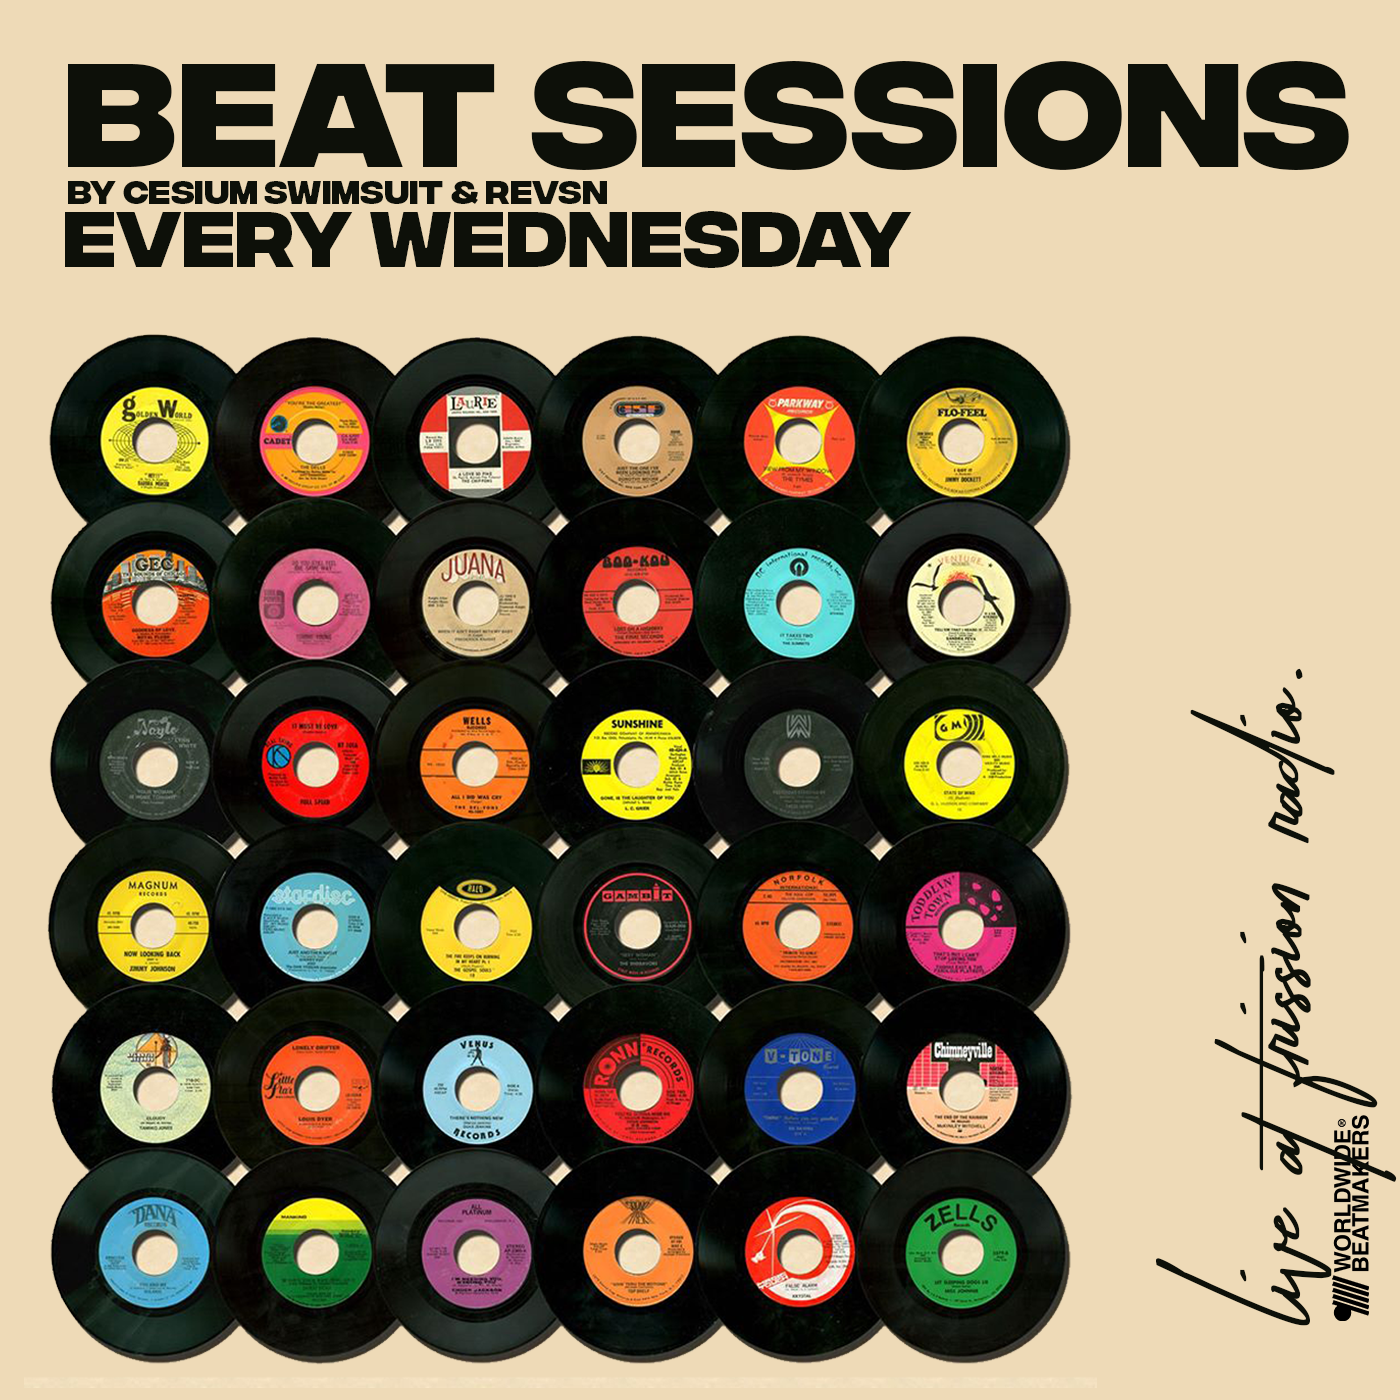 Beat Sessions - Episode 10 Season 04 with Cesium Swimsuit.